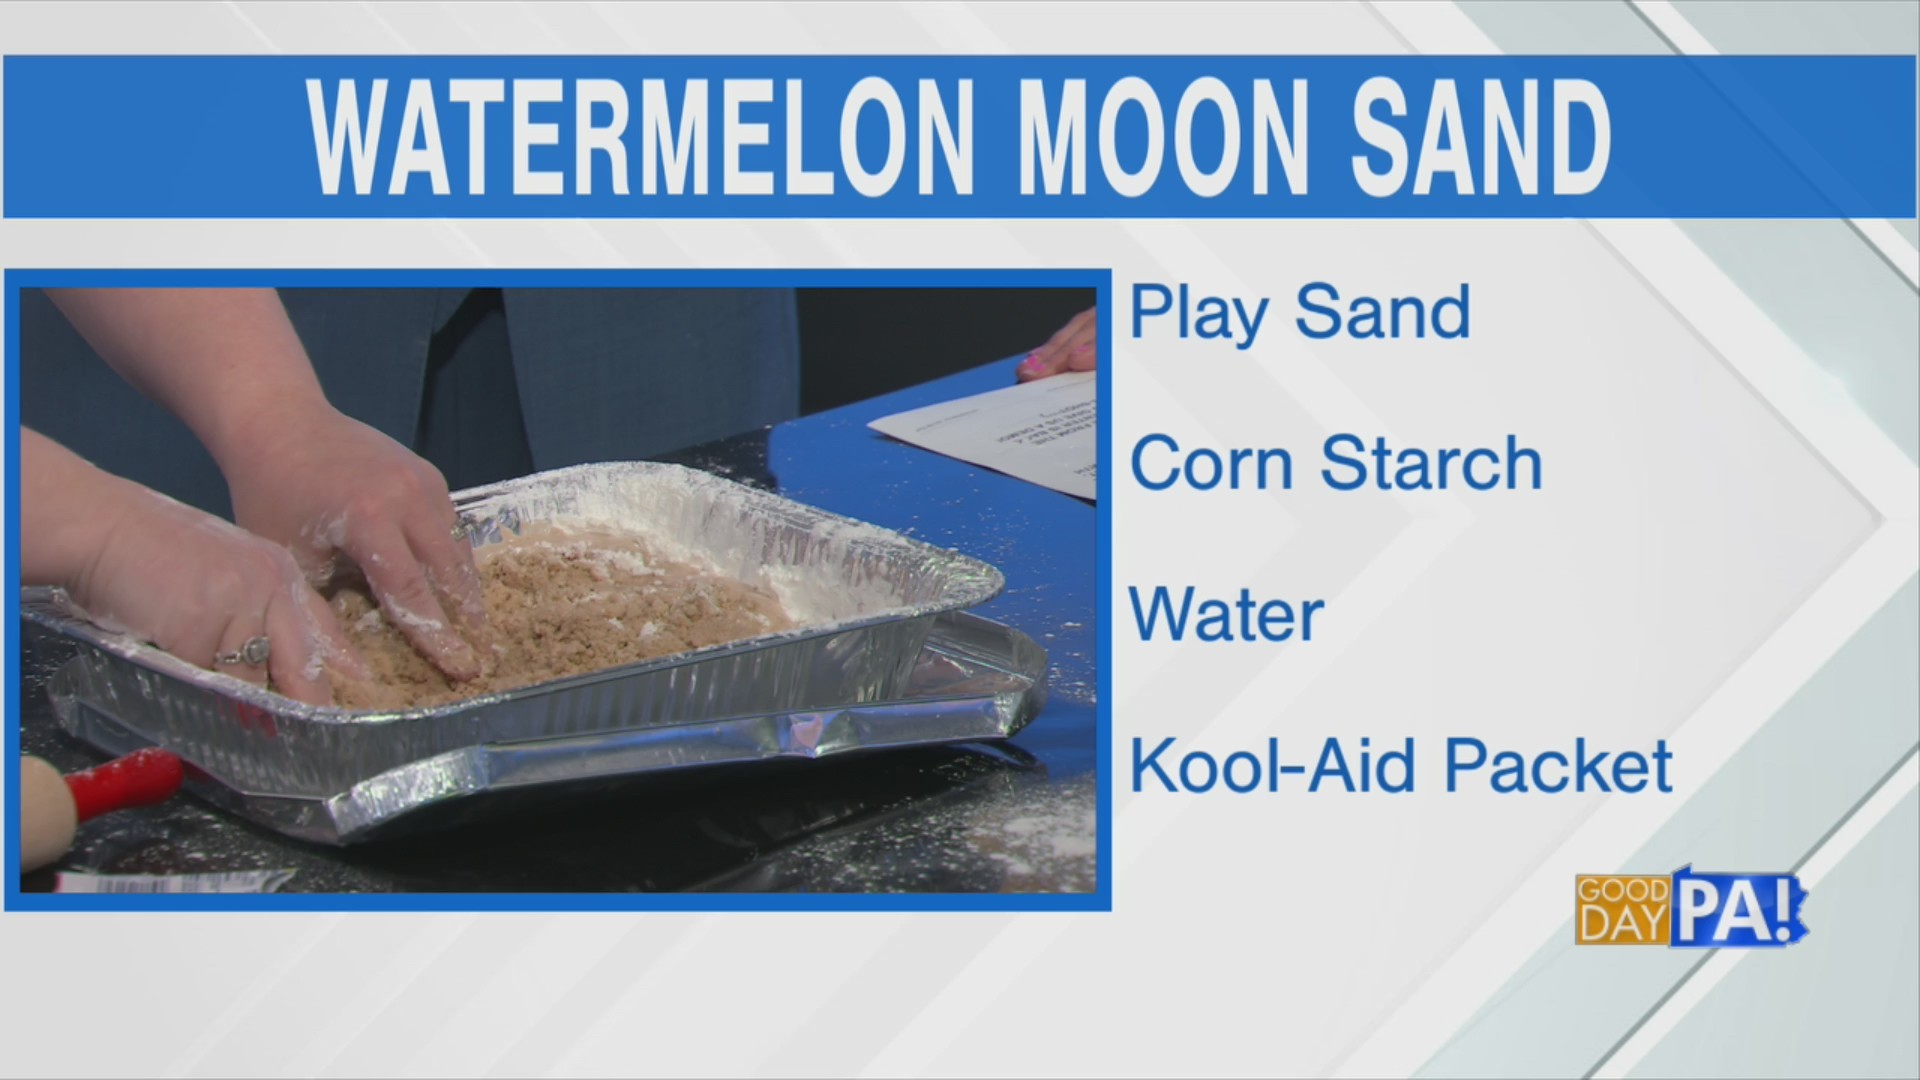 Watermelon Moon Sand